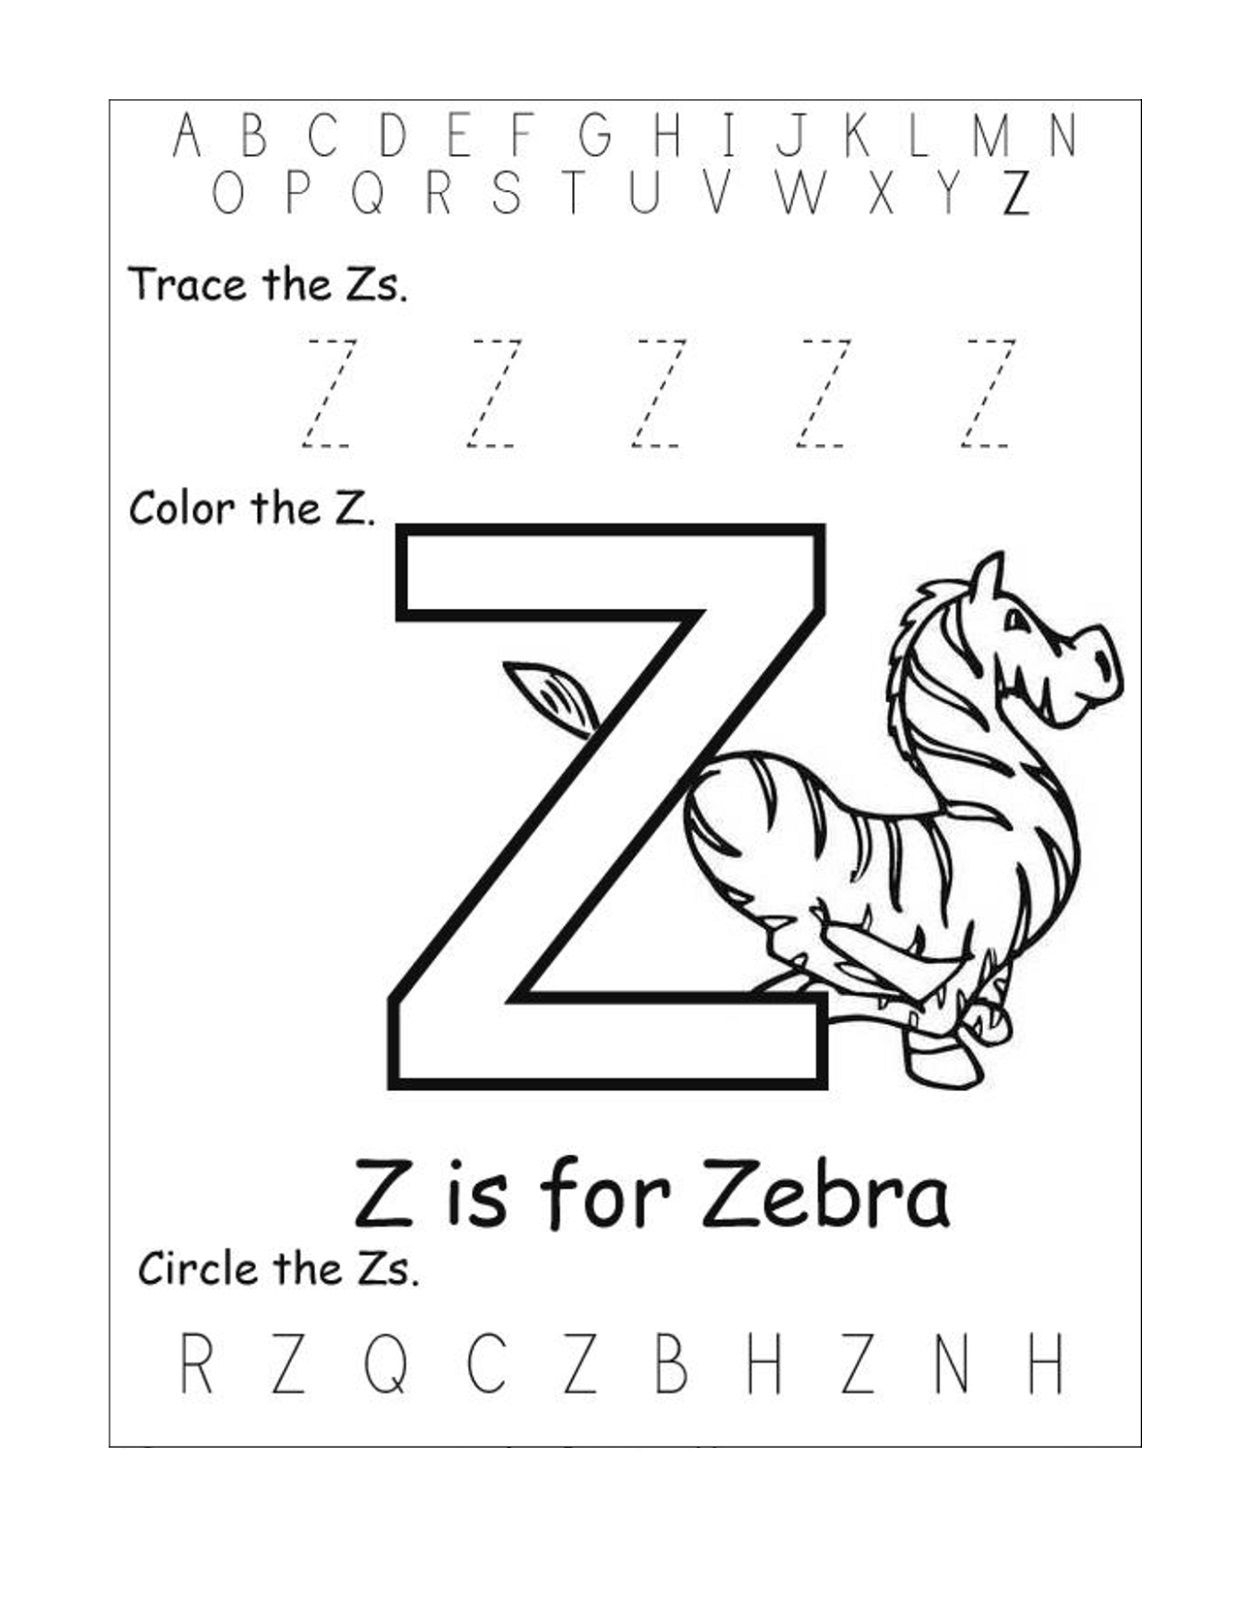 Letter Z Worksheets - Kids Learning Activity | Preschool with regard to Letter Z Worksheets